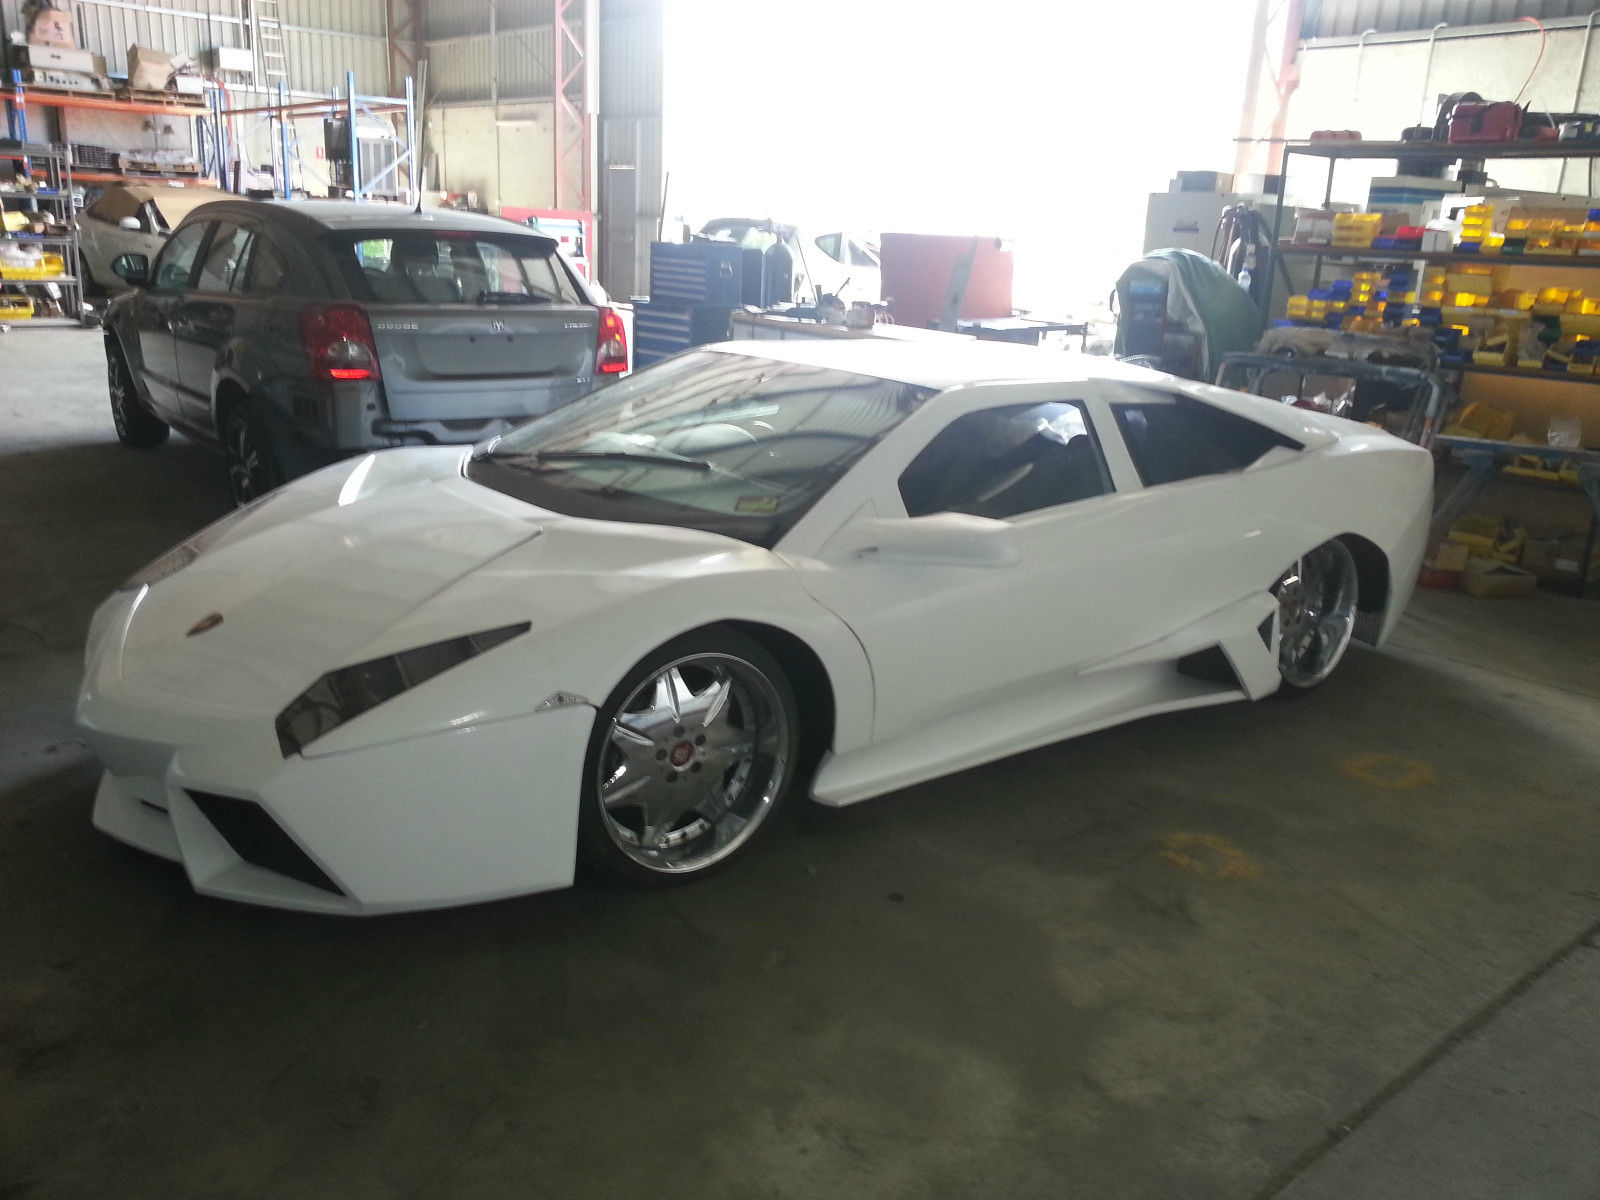 White Lamborghini Reventon Replica For Sale In U.S